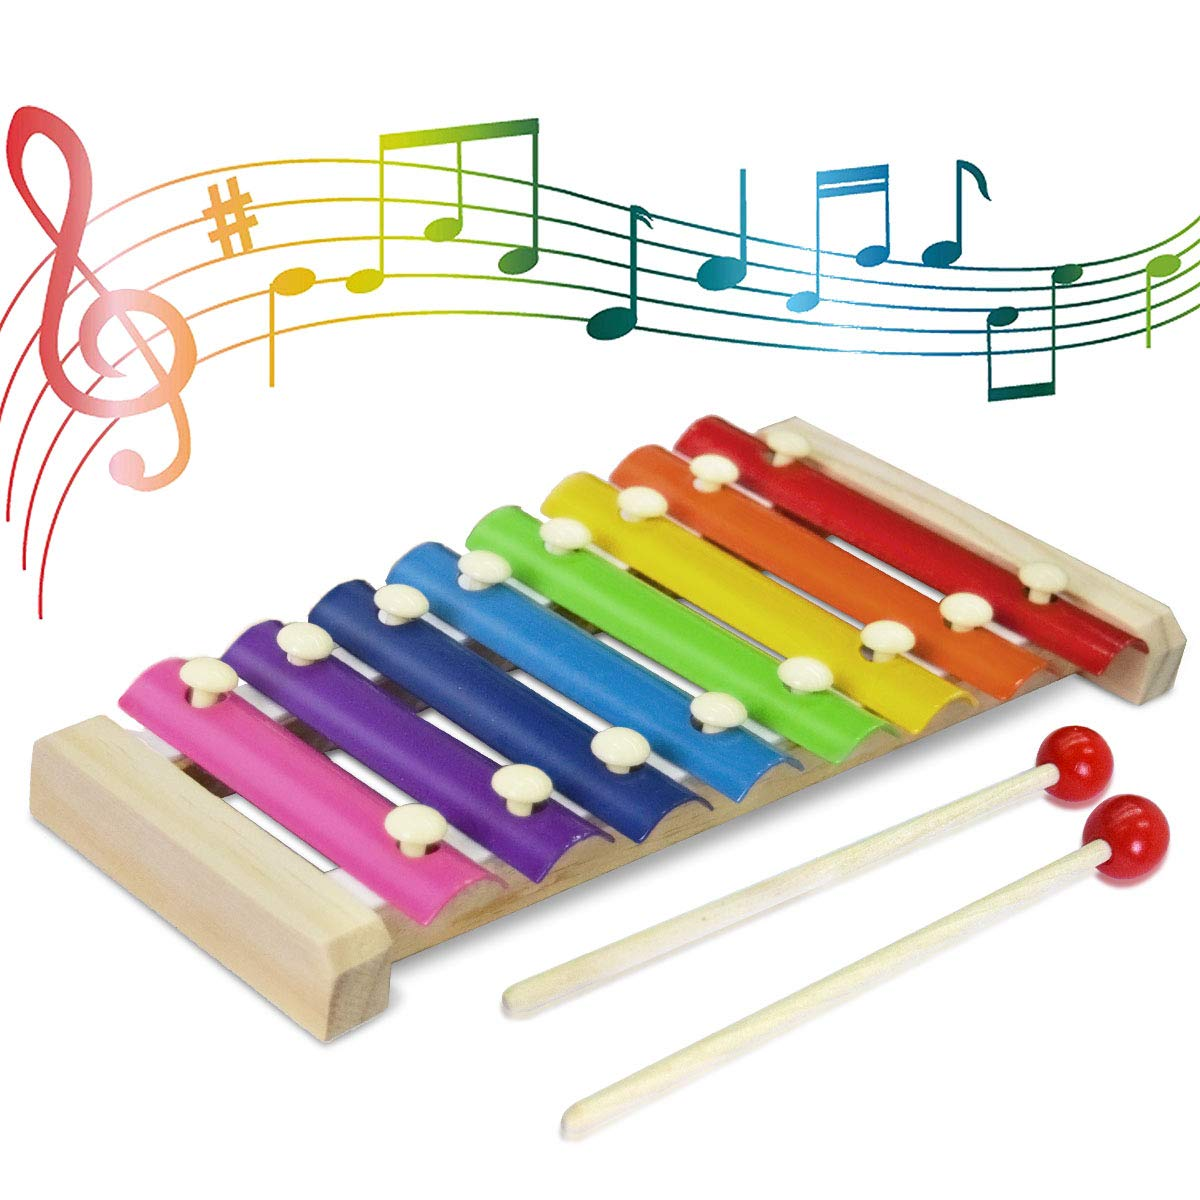 CACA Kids Toys Musical Instruments Include Xylophone Bells Maracas Percussion Toys, Early Education Learning Toys for Toddler, Baby and Preschool Children - 14 PCS